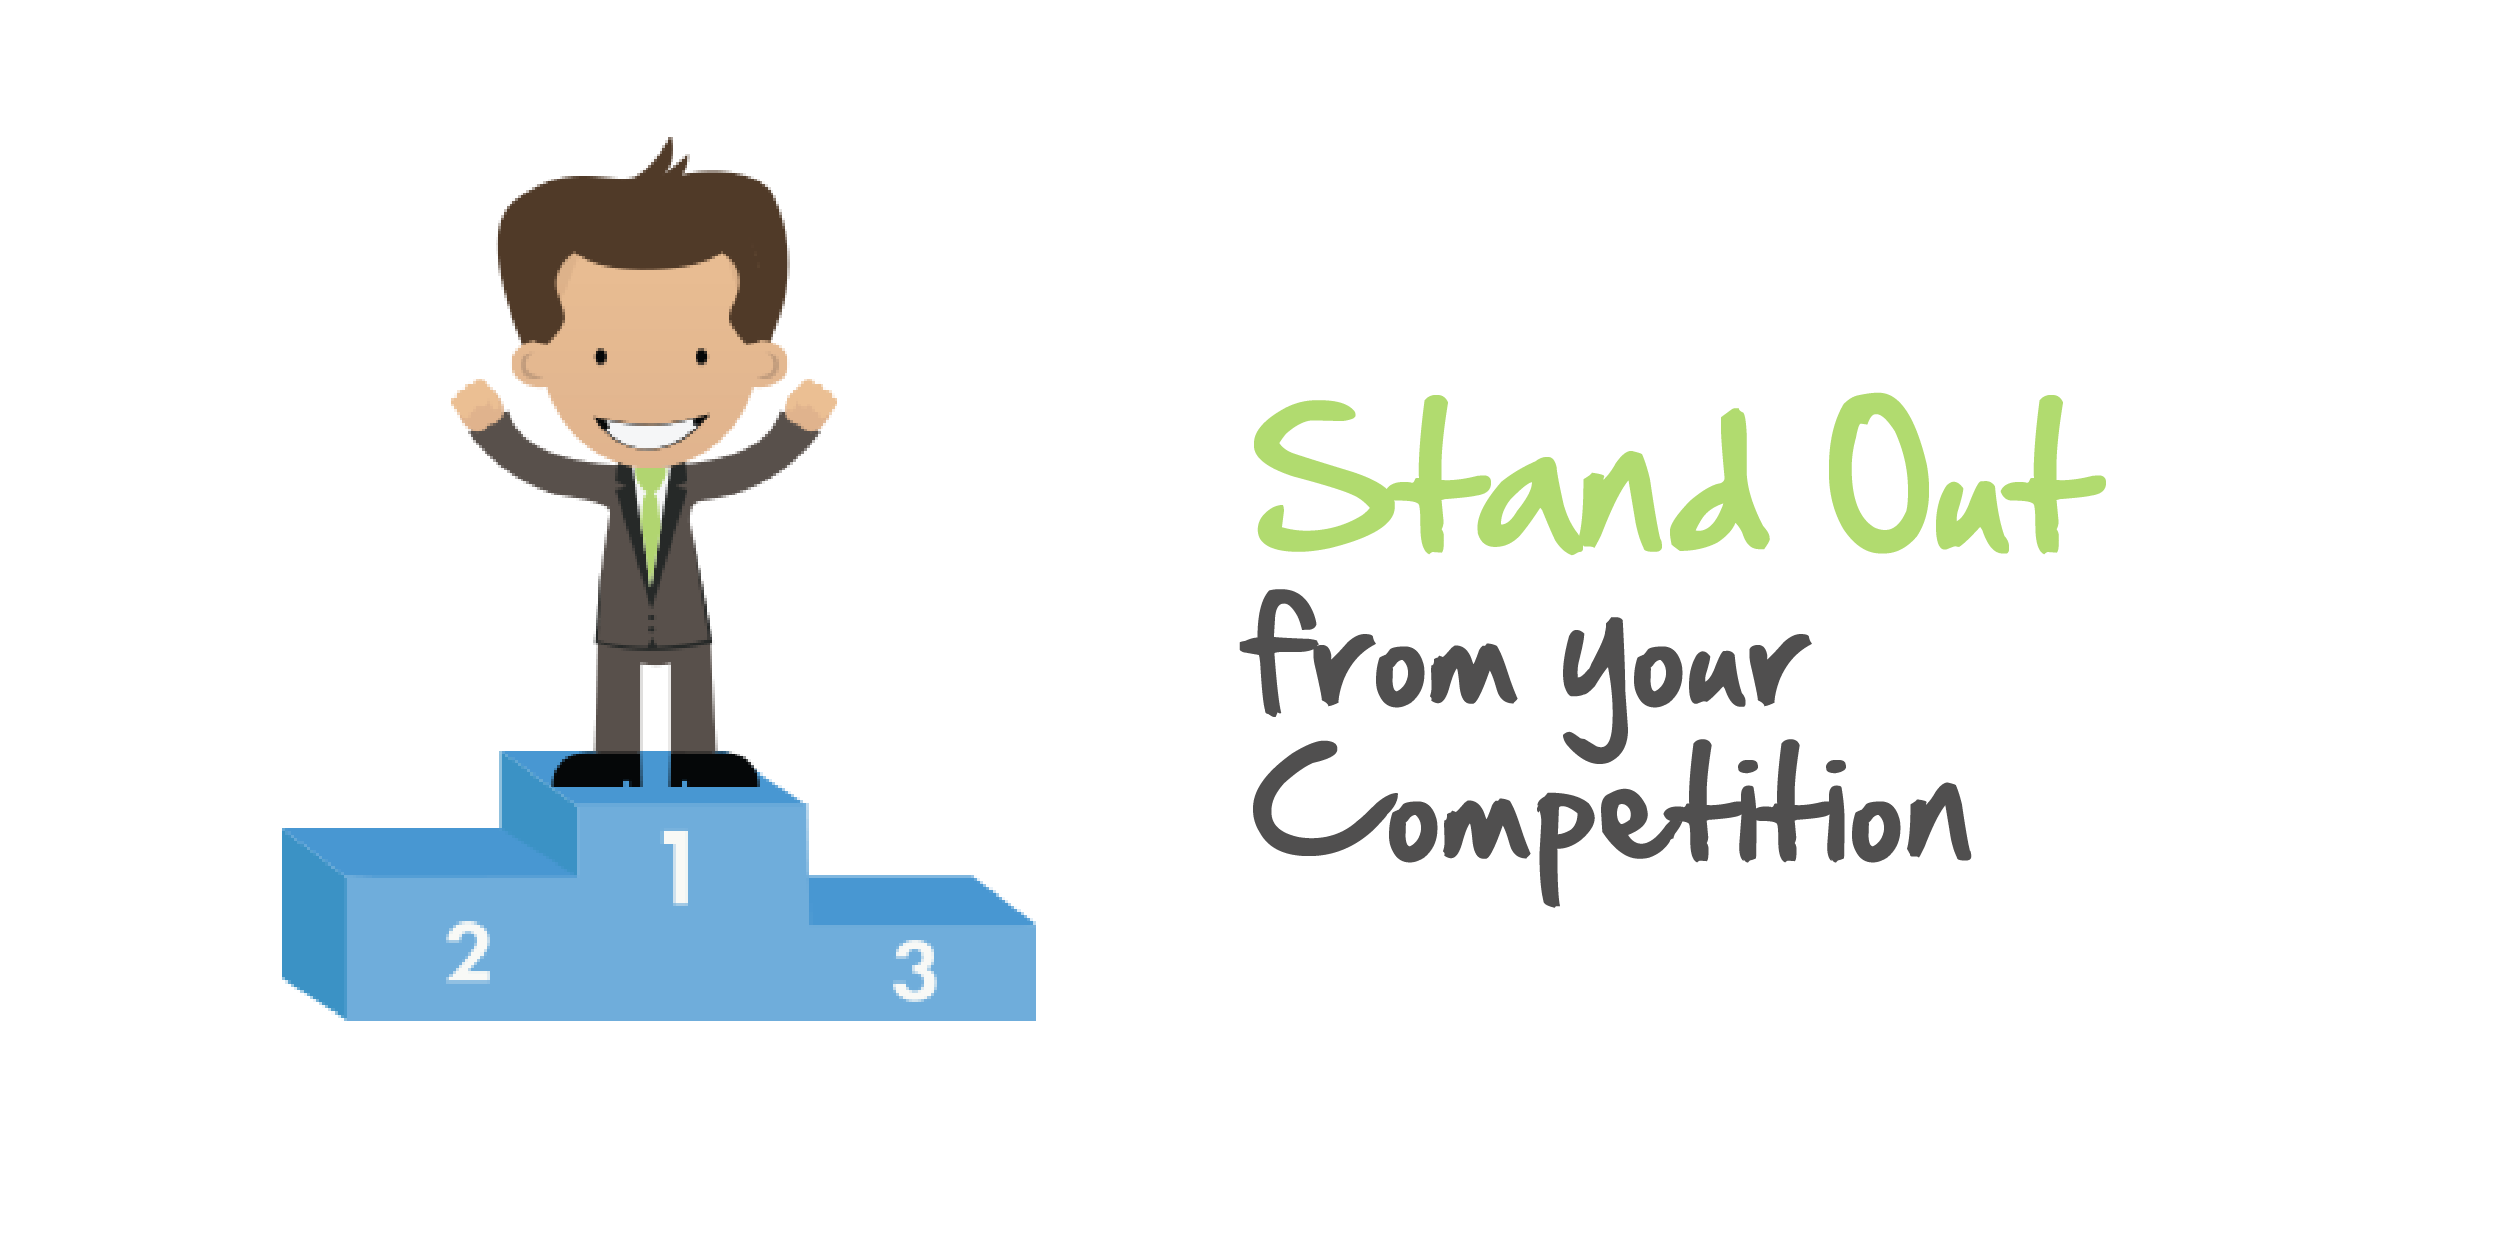 Competition clipart group. Make your business stand